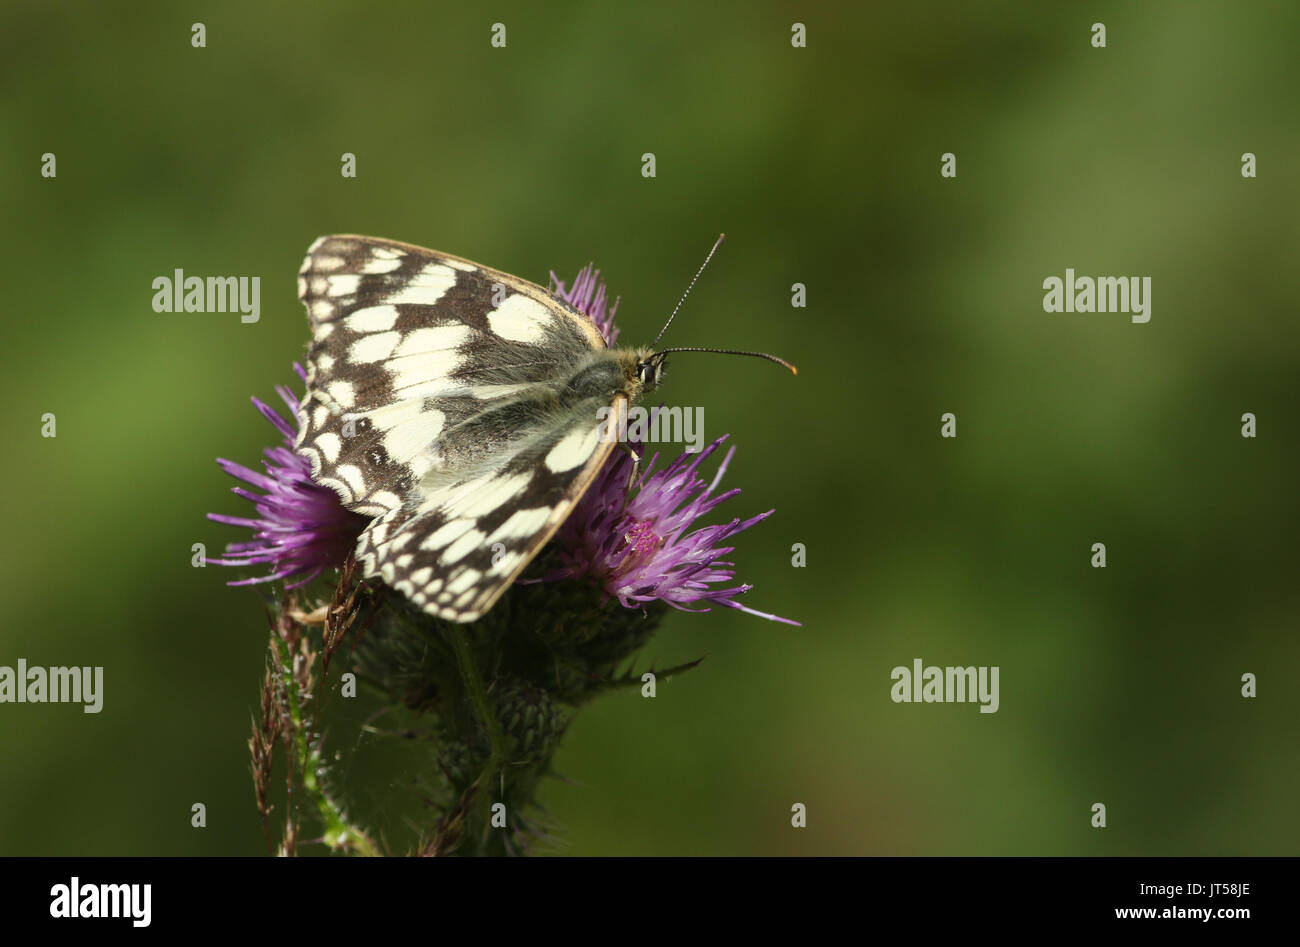 A pretty Marbled White Butterfly (Melanargia galathea) nectaring on a thistle. - Stock Image